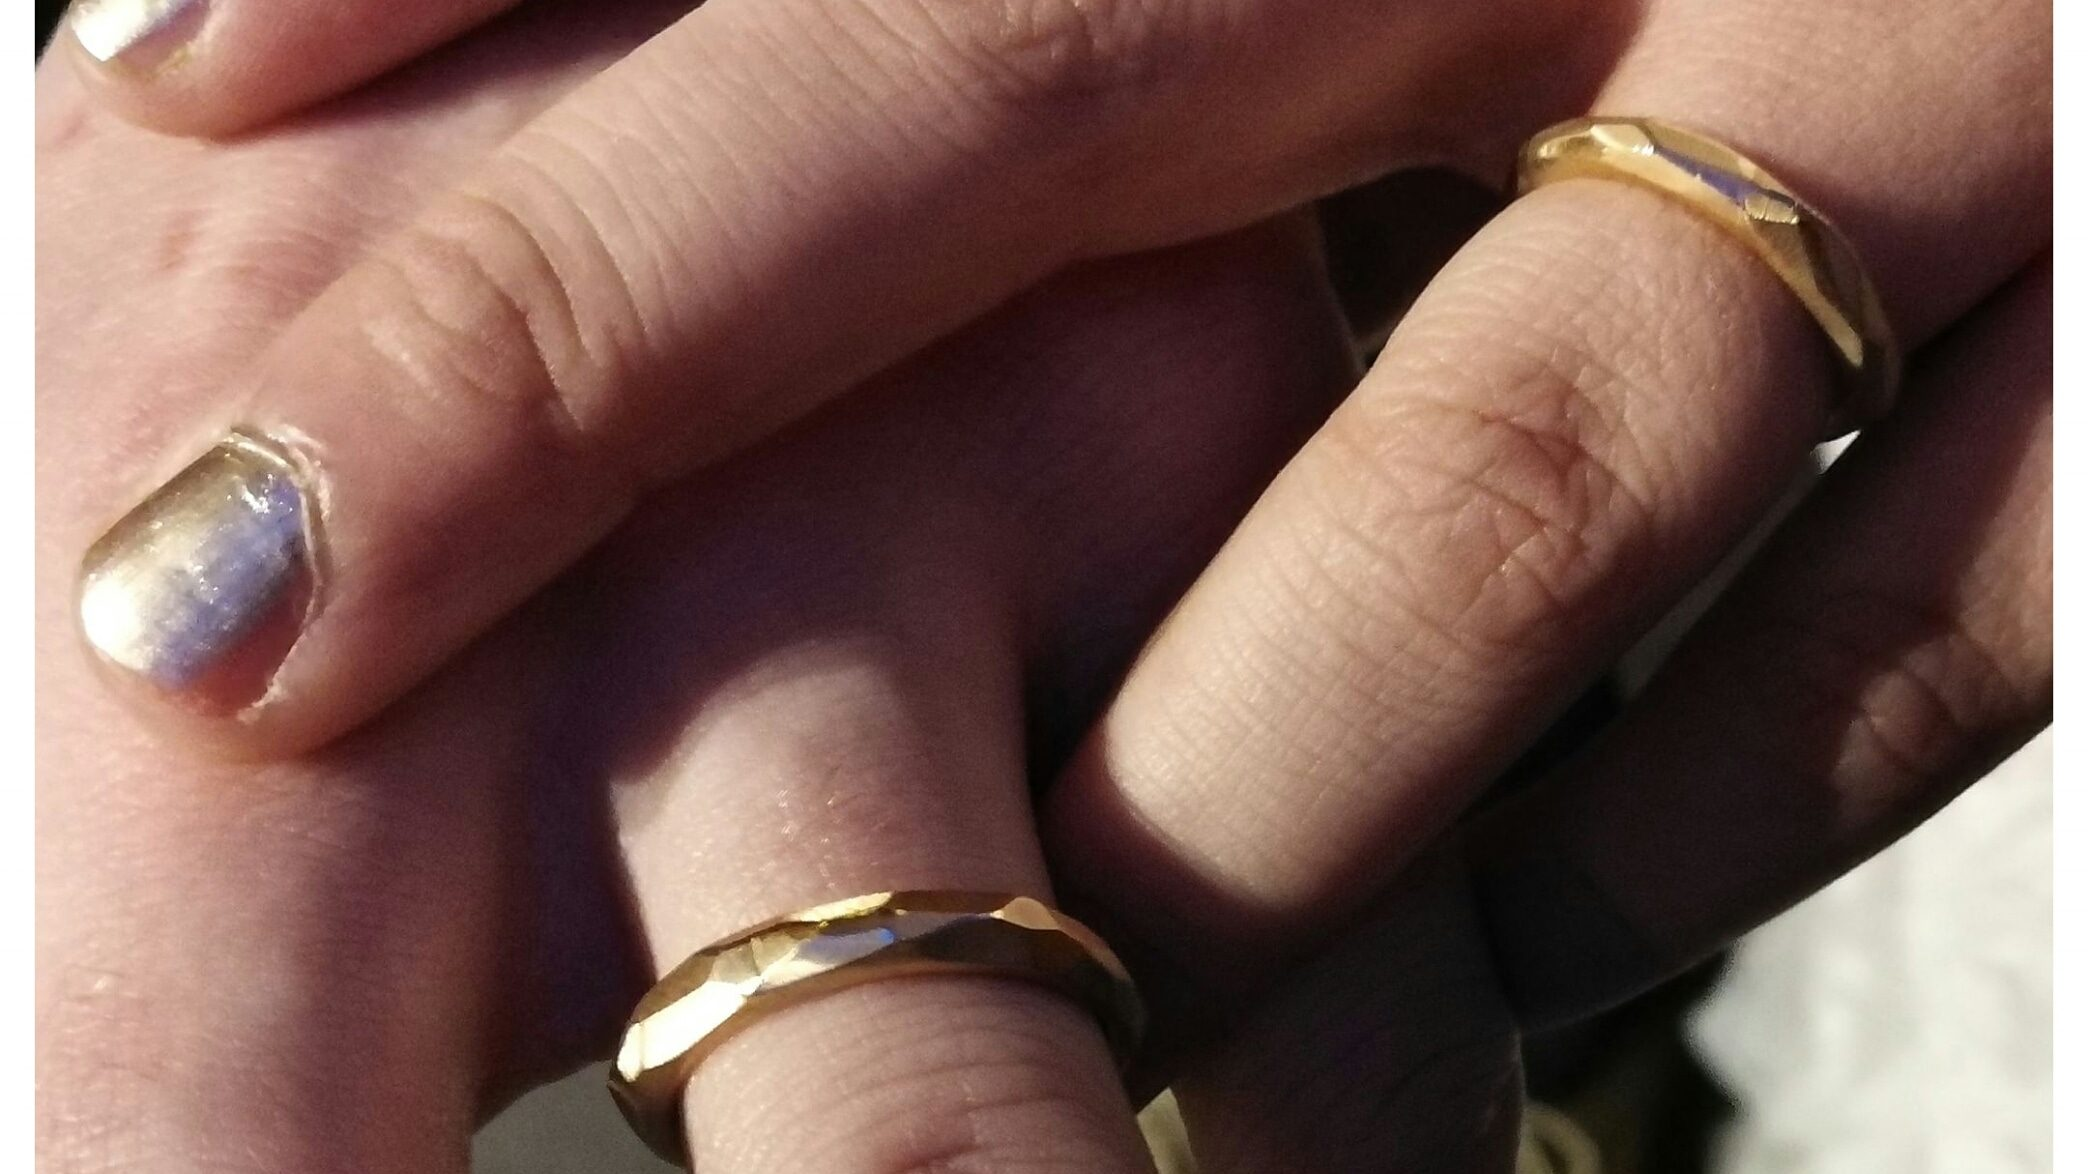 rosé gold wedding rings in a rocky style. Hard brushed finish with a polished line in between the facets